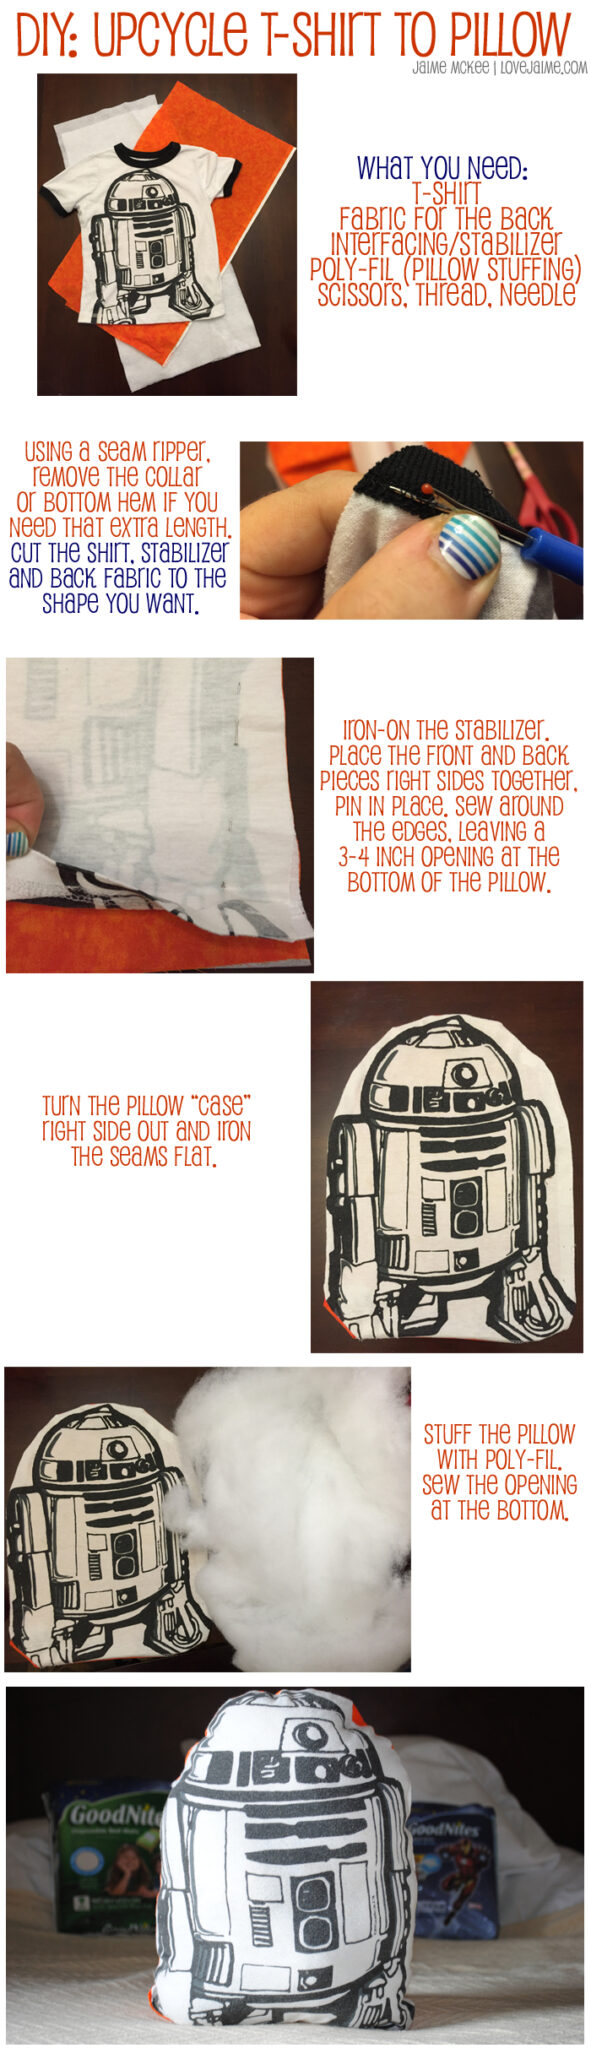 diy-tshirt-pillow-r2d2